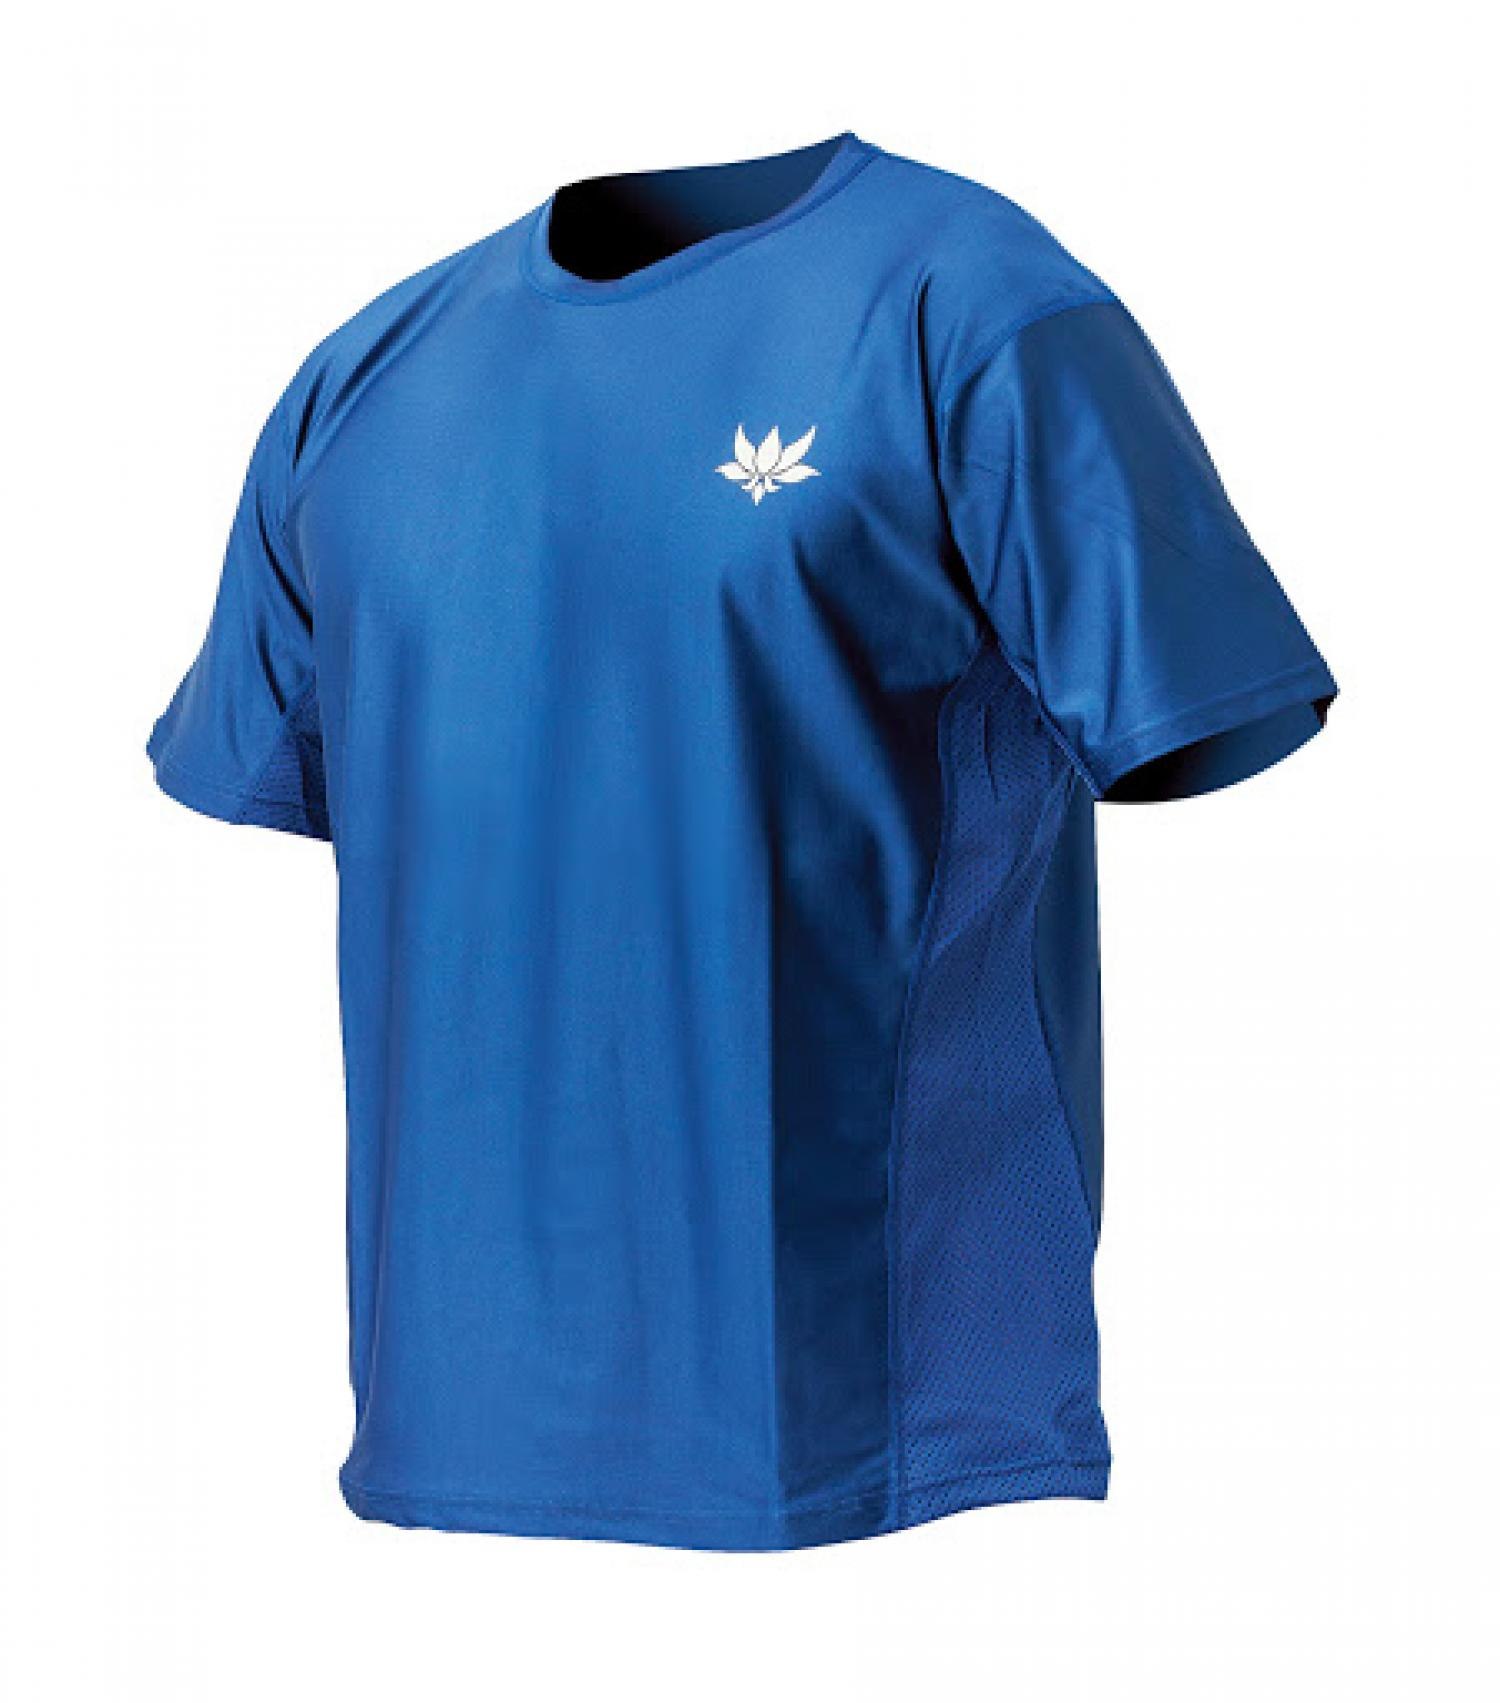 [AXXE CLASSIC] AIR-FAST RASH GUARD TEE  NVY